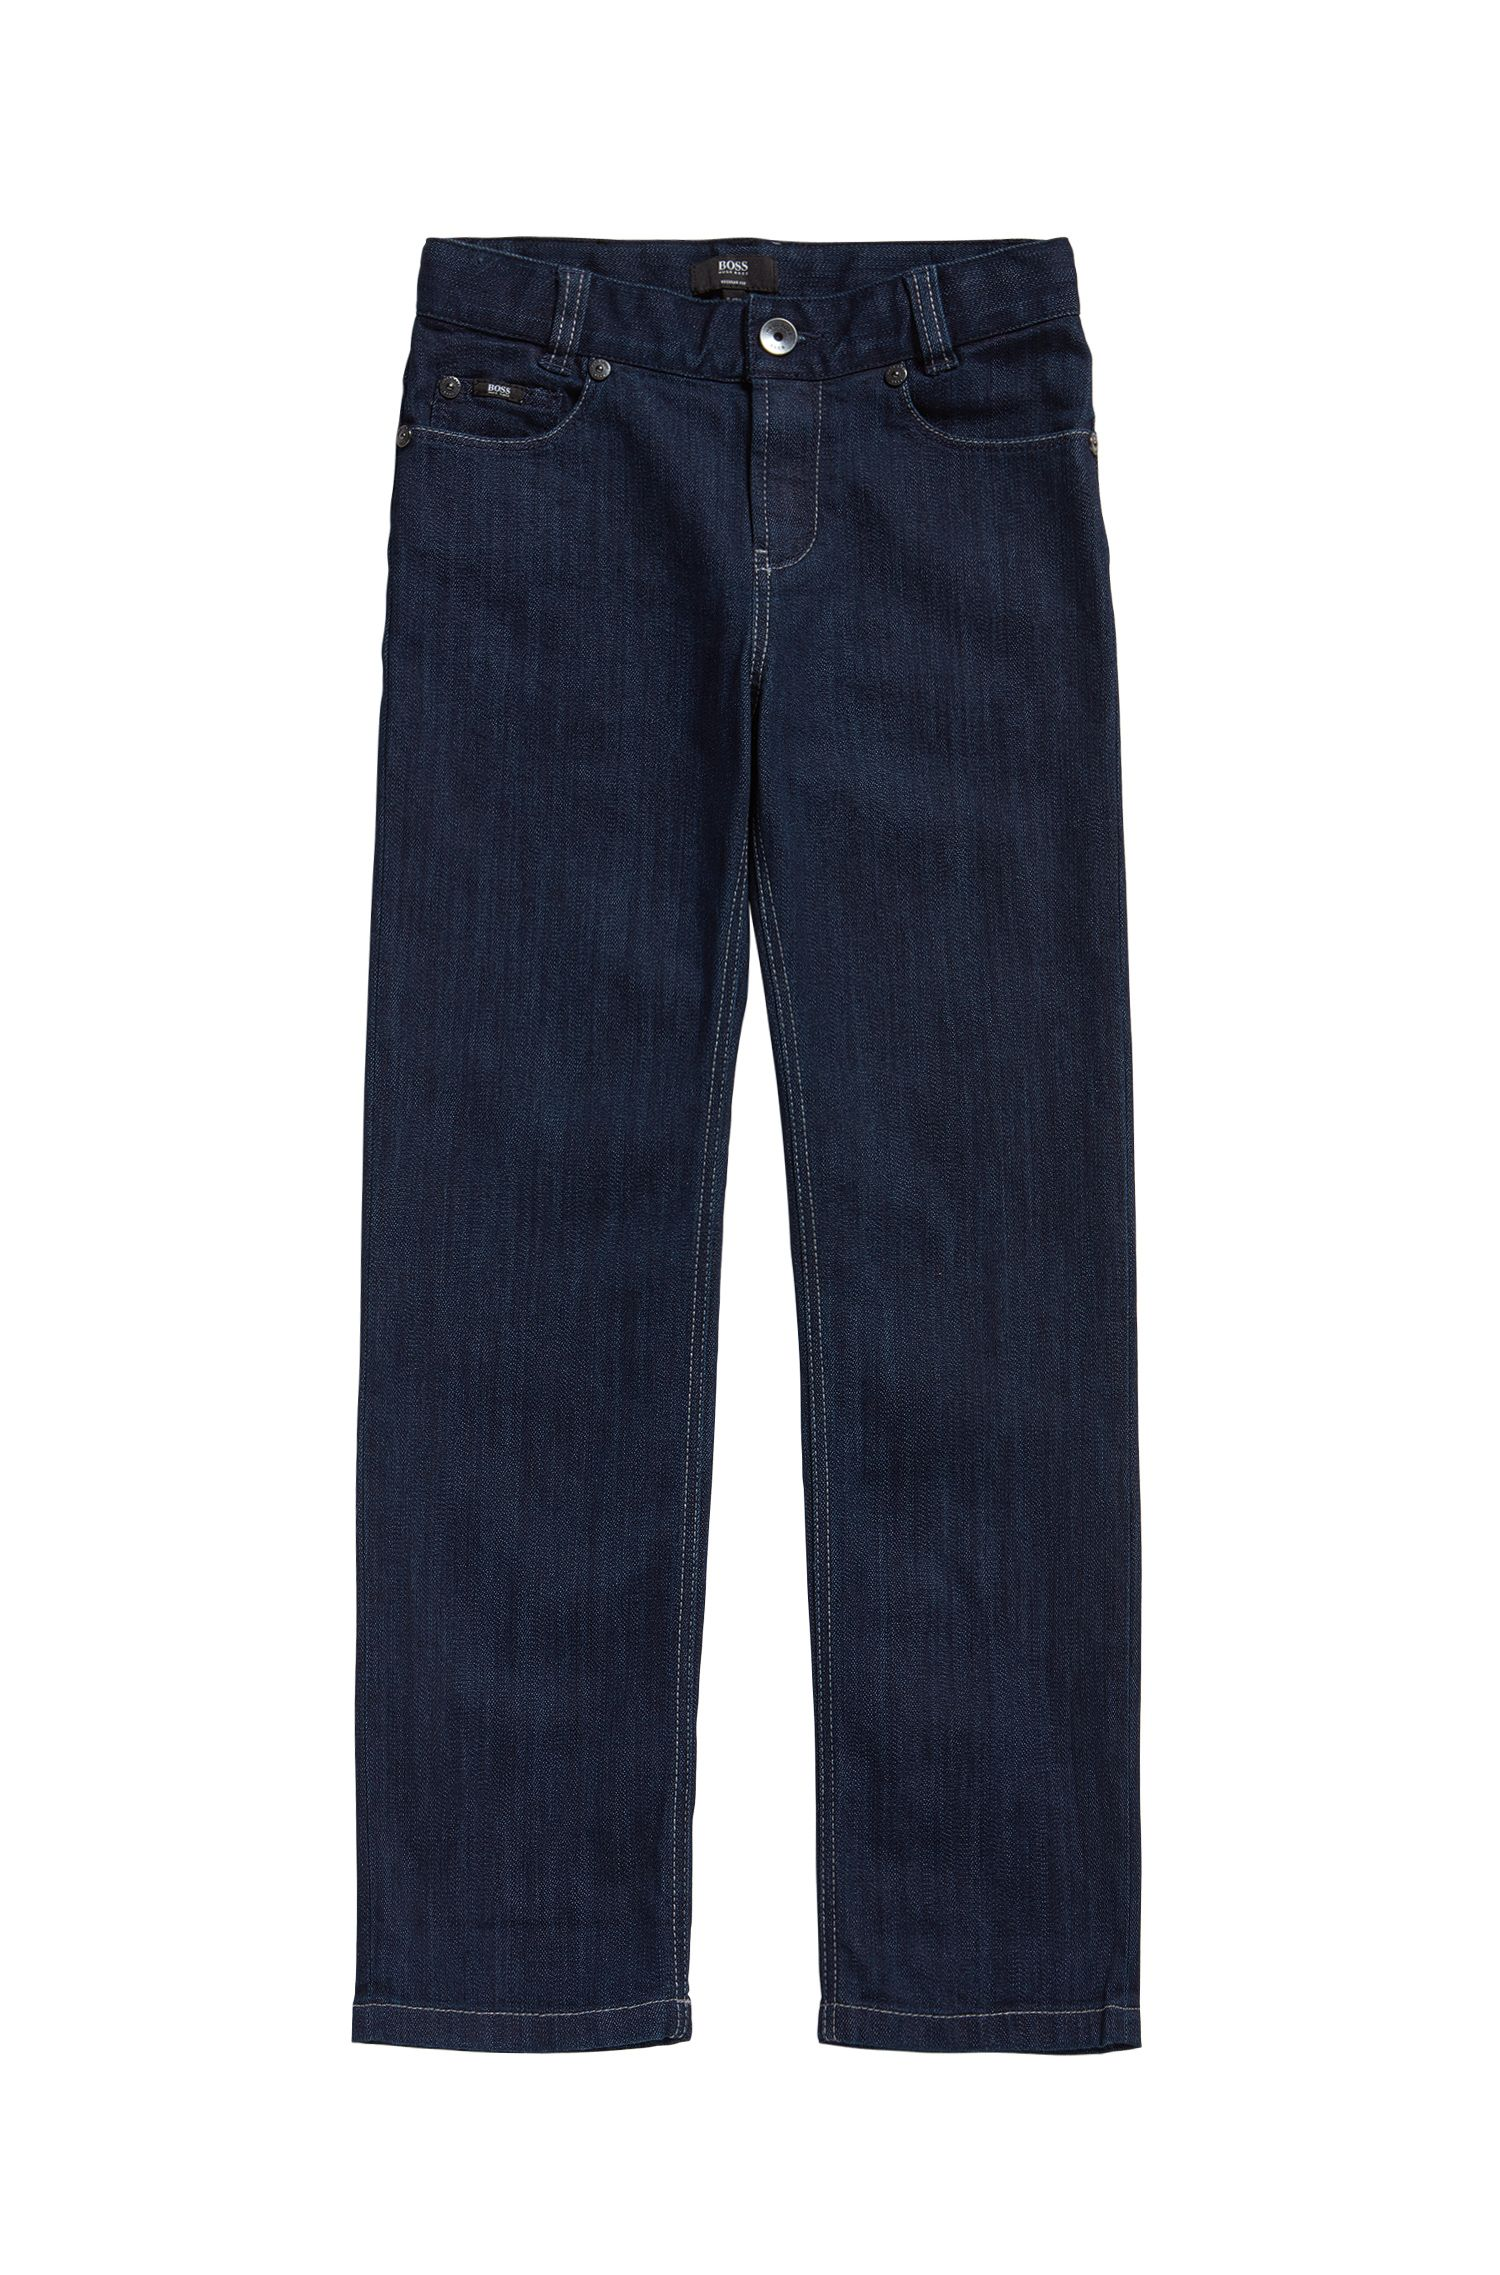 'J24425' | Boys Stretch Cotton Blend Jeans